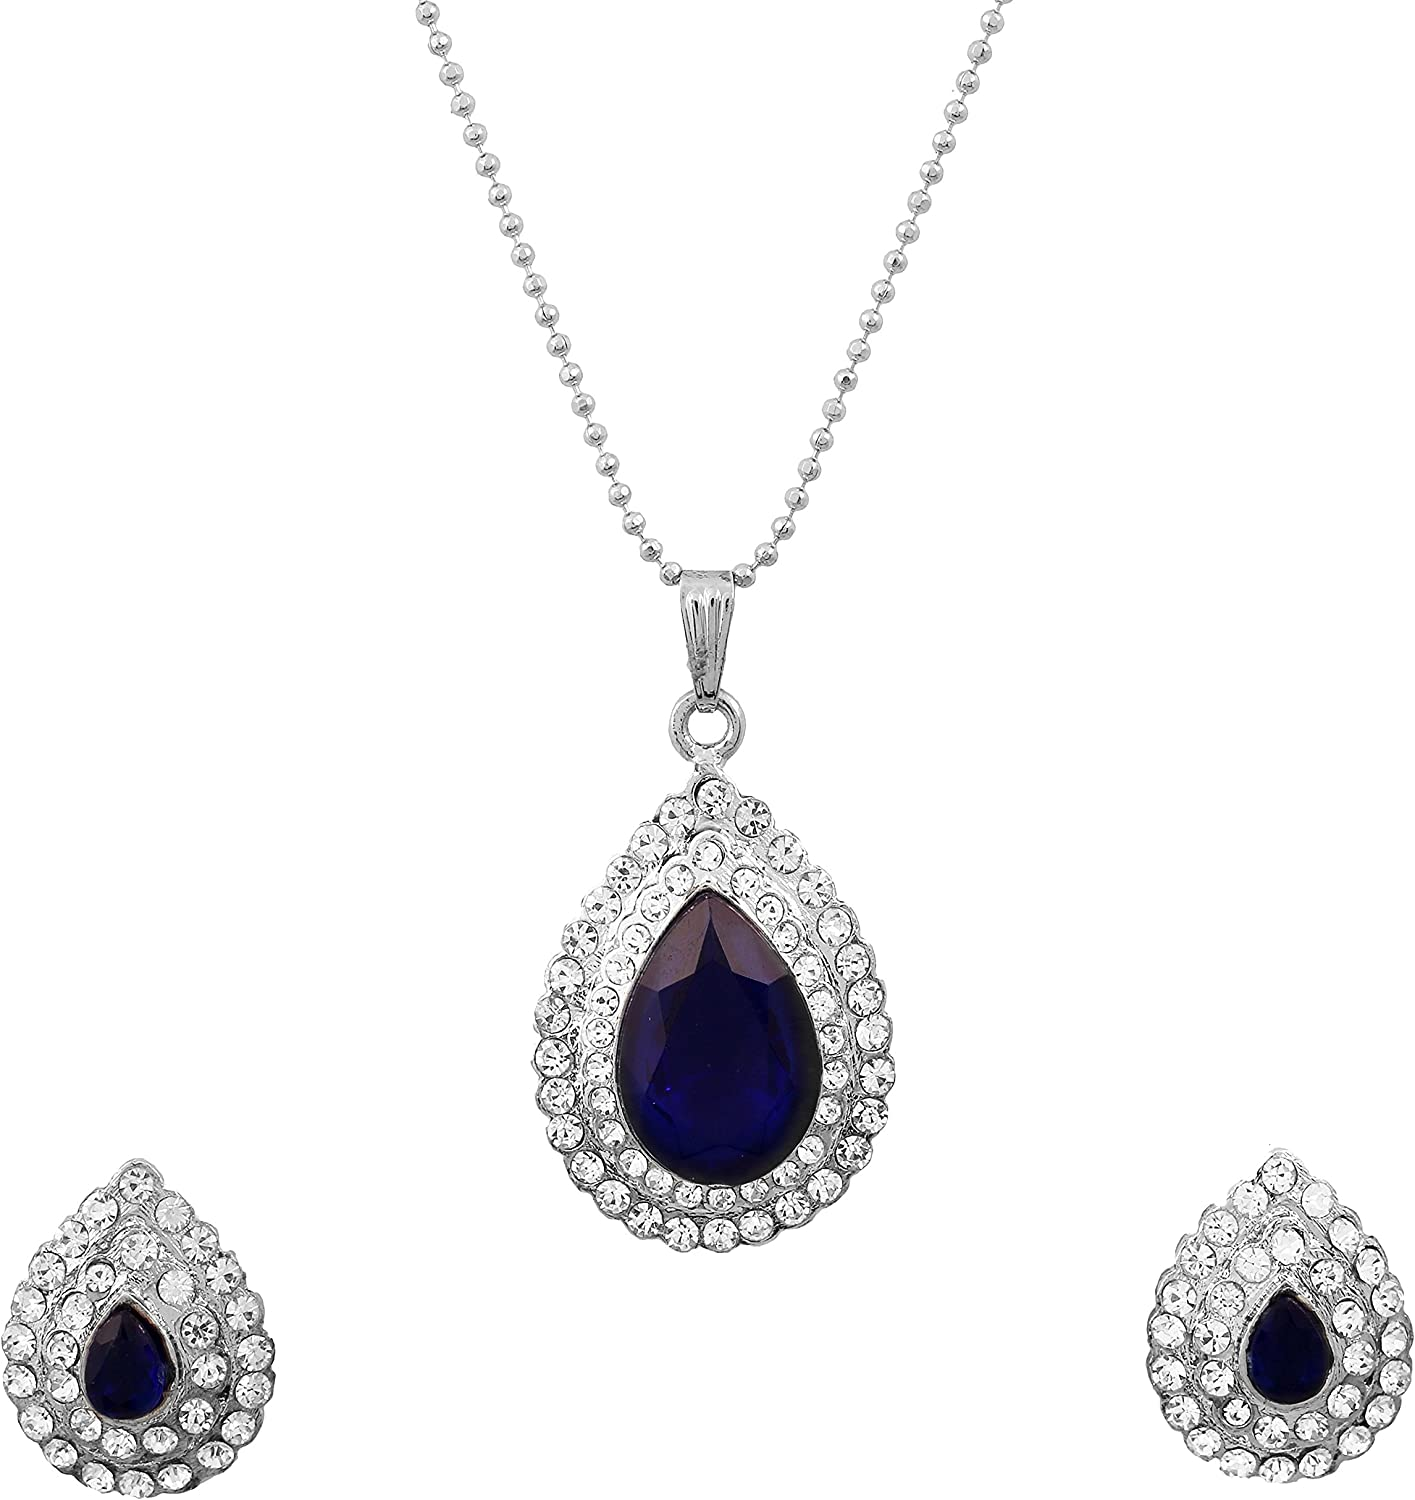 Touchstone Hollywood Glamour Blue White Crystals Wedding Evening Jewelry Pendant in Silver Tone for Women